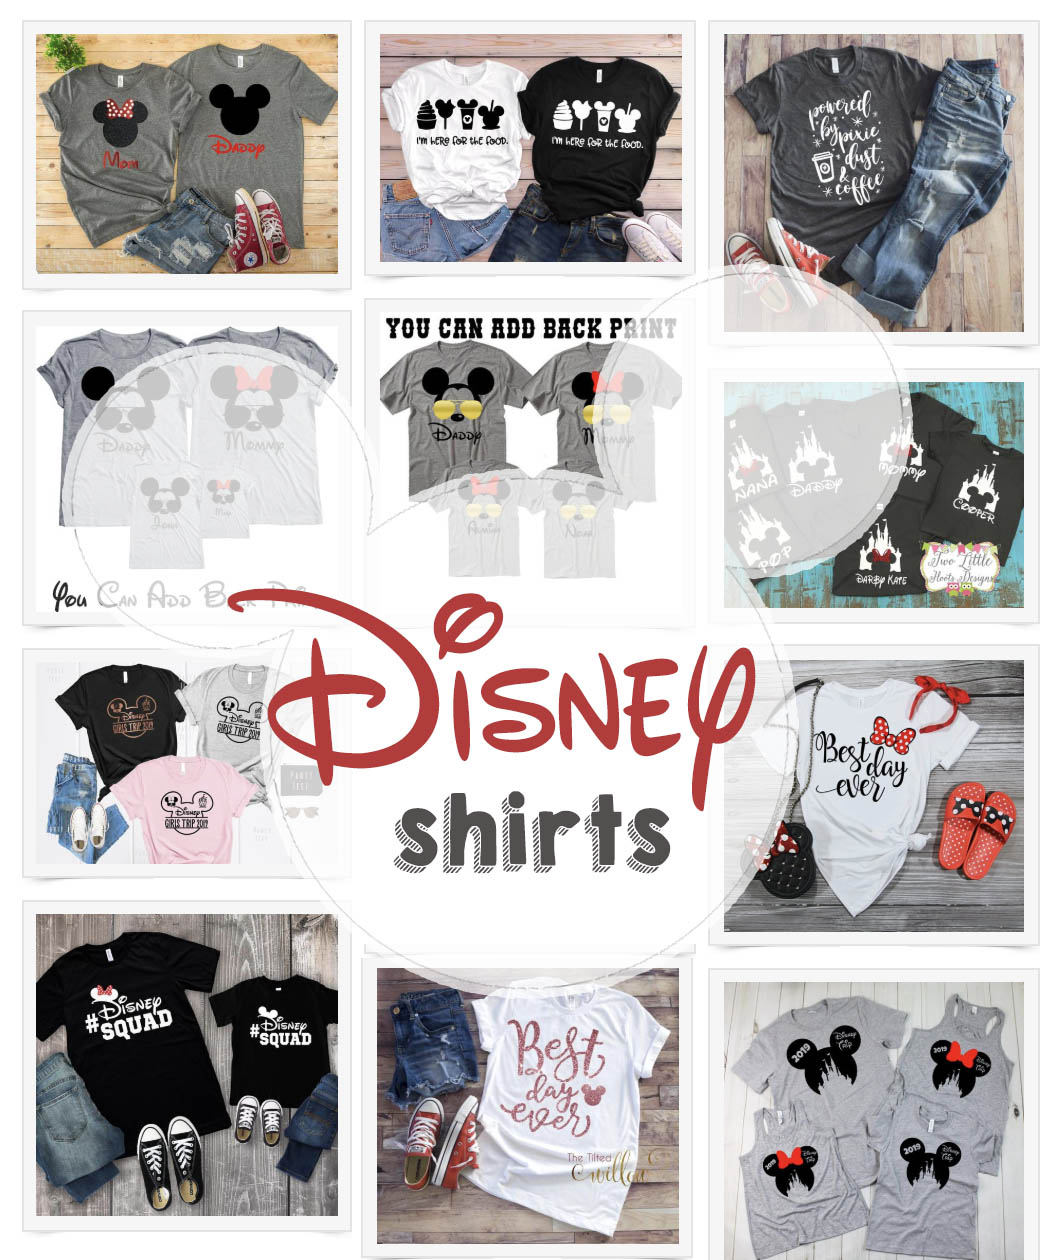 Disney Family Shirts - Awesome Matching Disney Vacation Tees We Love 21688d433